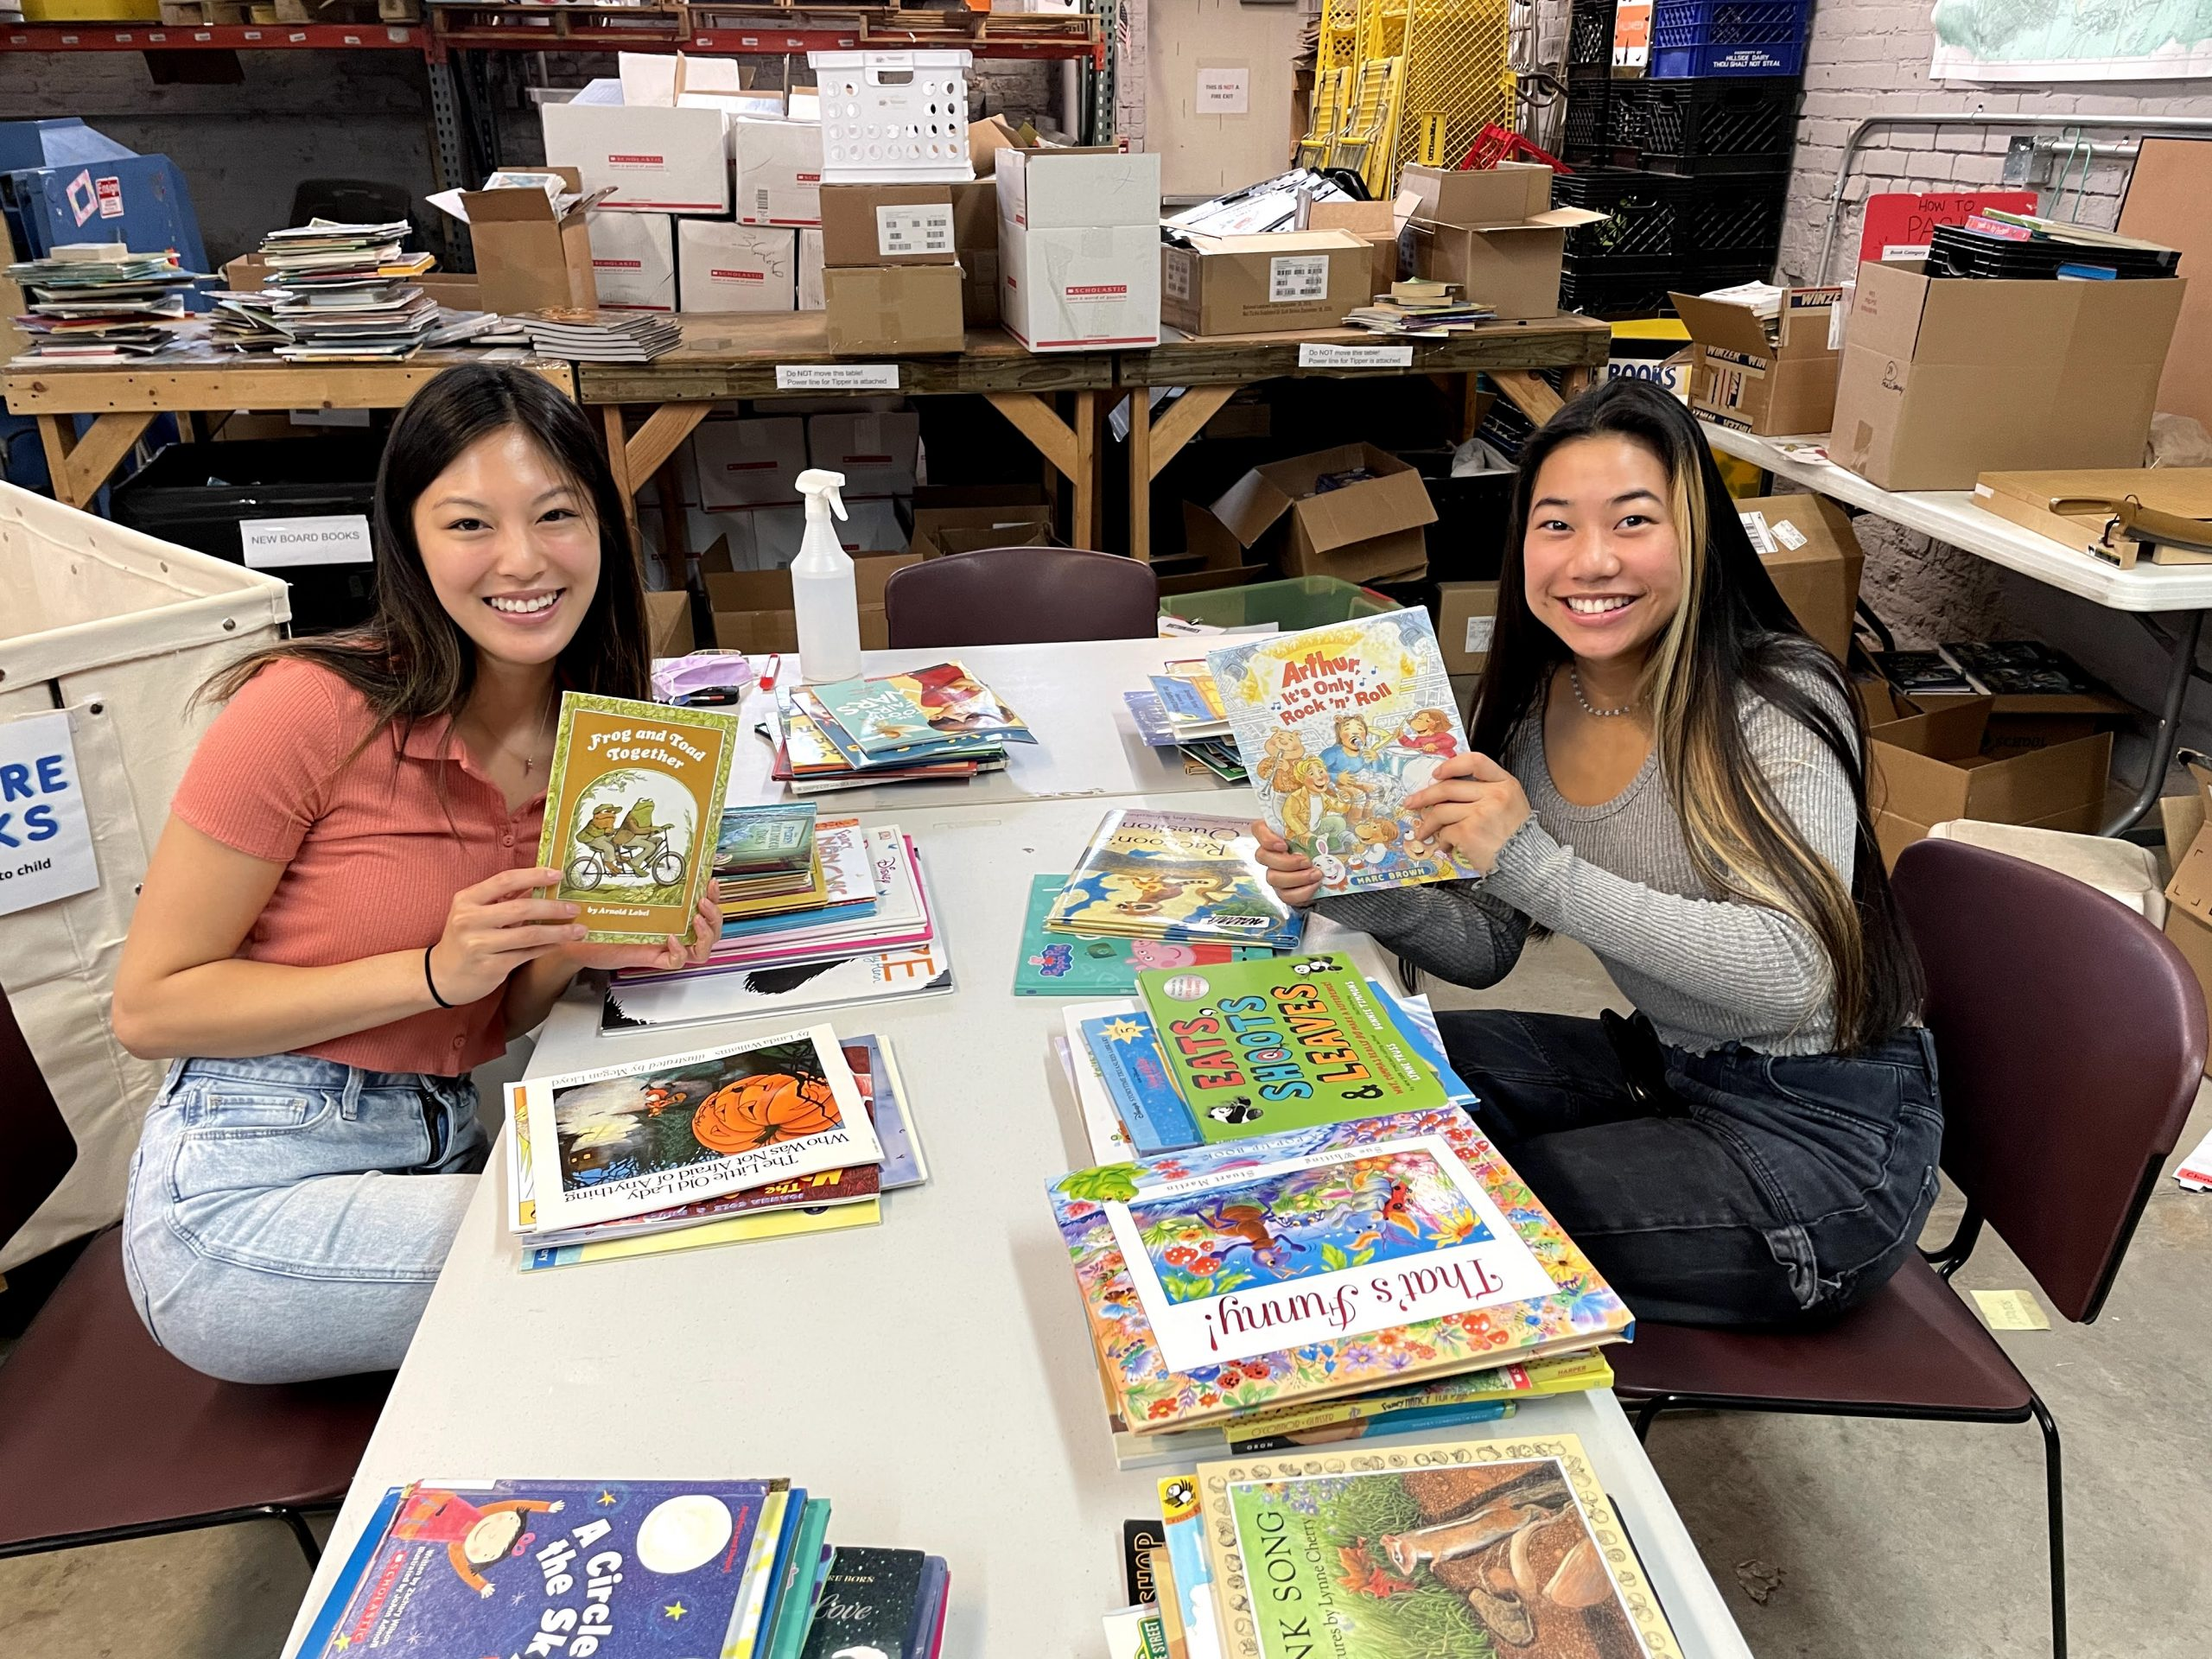 Two smiling young women seated at a table of books at the Cleveland Kids' Book Bank warehouse